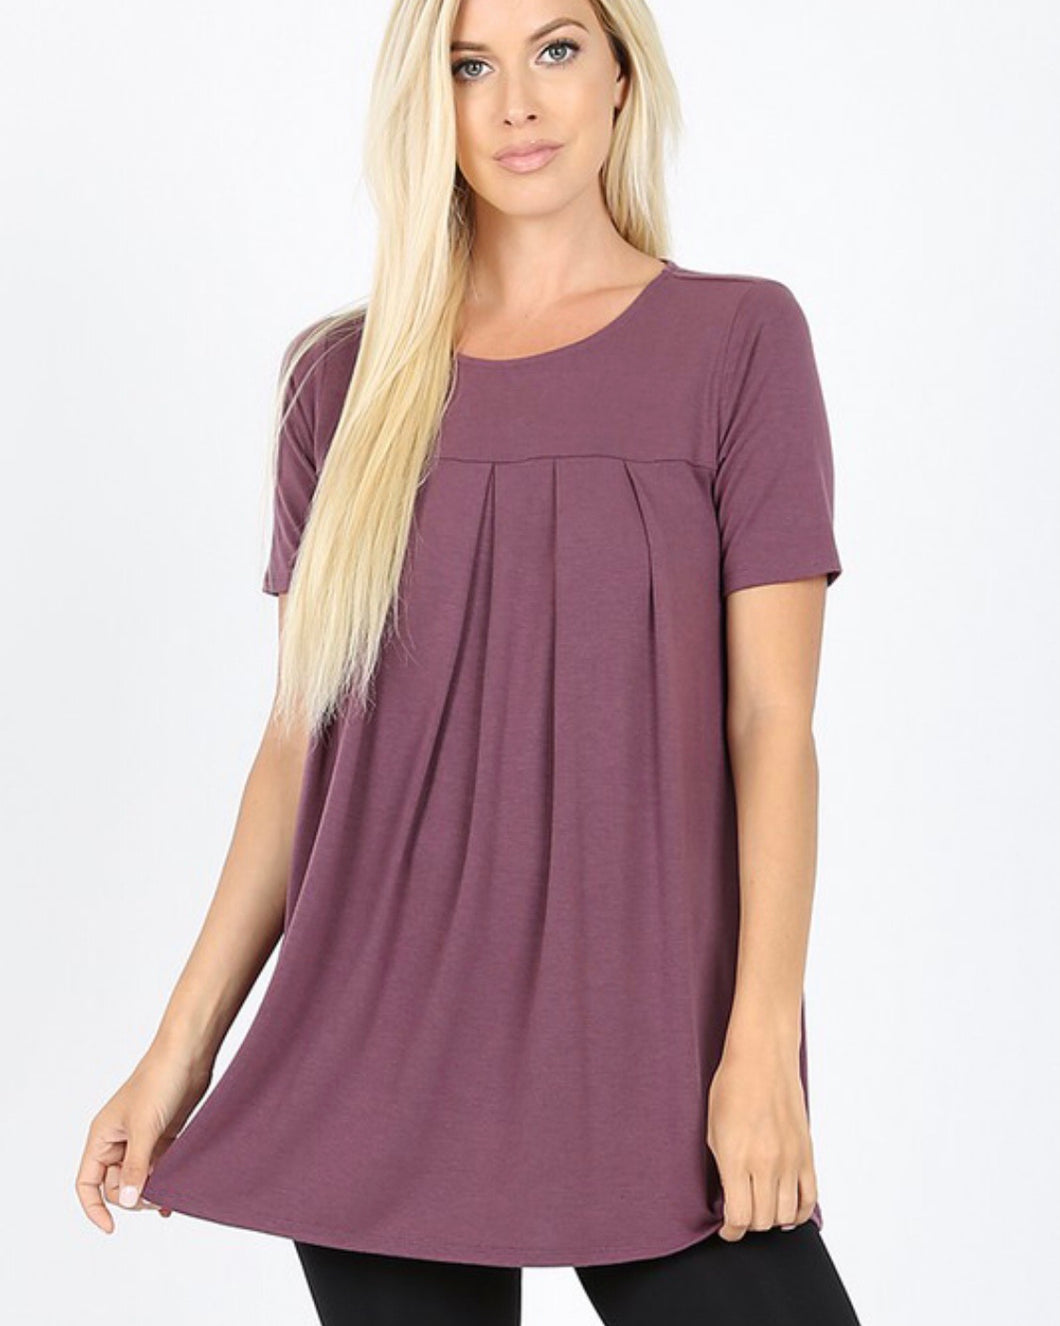 Pleated Plum Top with Pockets